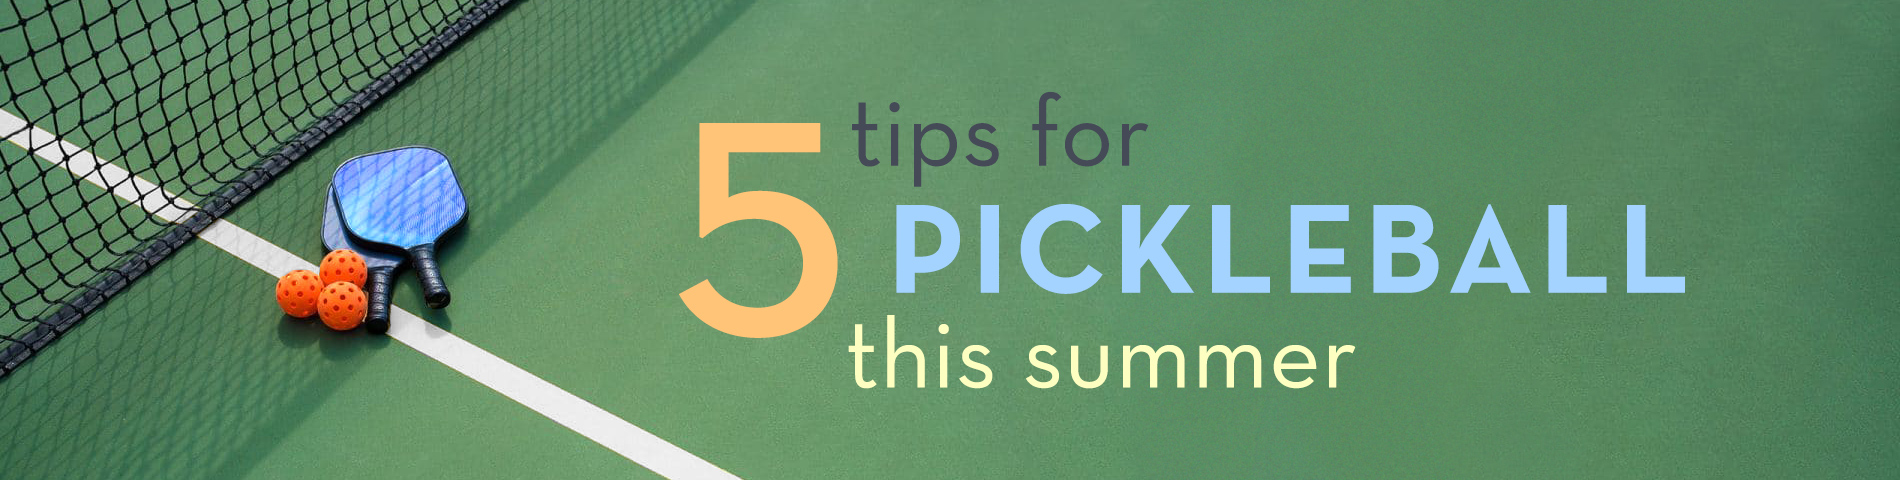 5 Tips To Get In Shape For Pickleball This Summer!